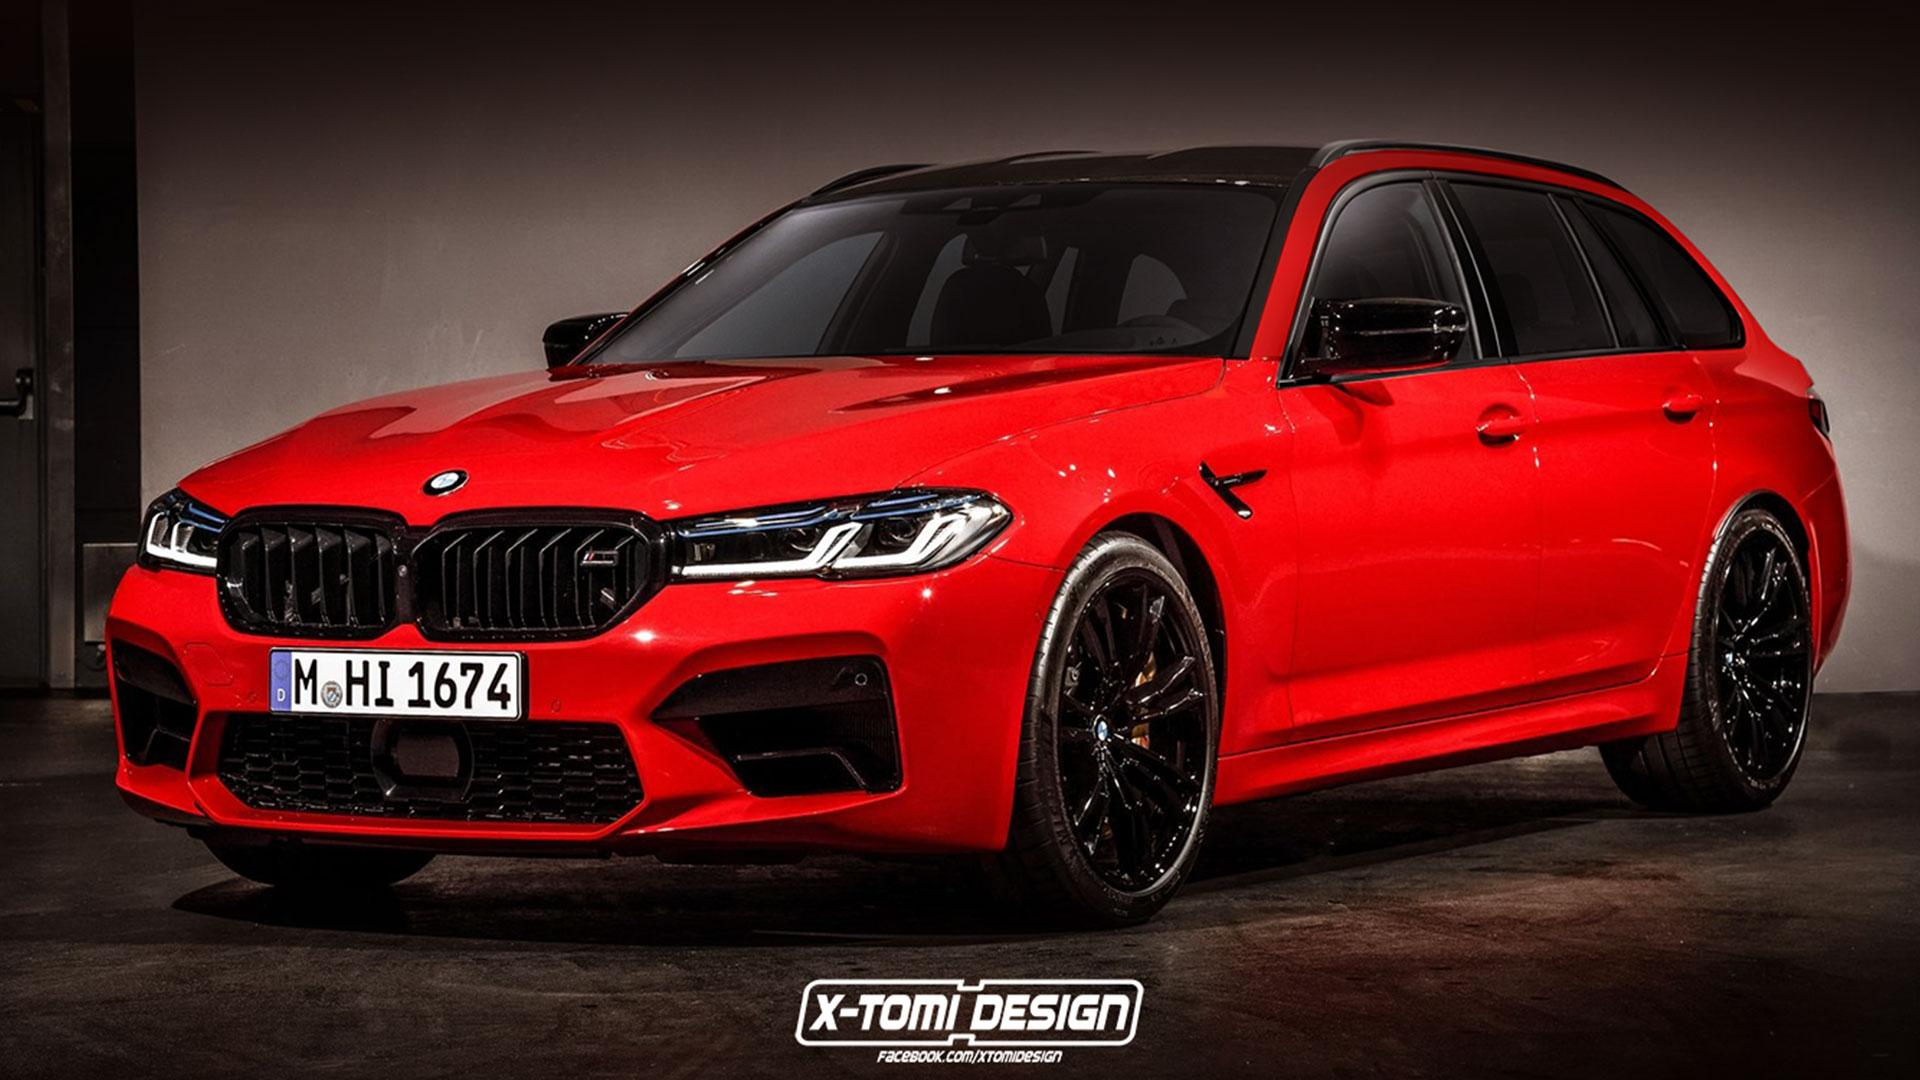 BMW M5 Touring G31 Competition Facelift